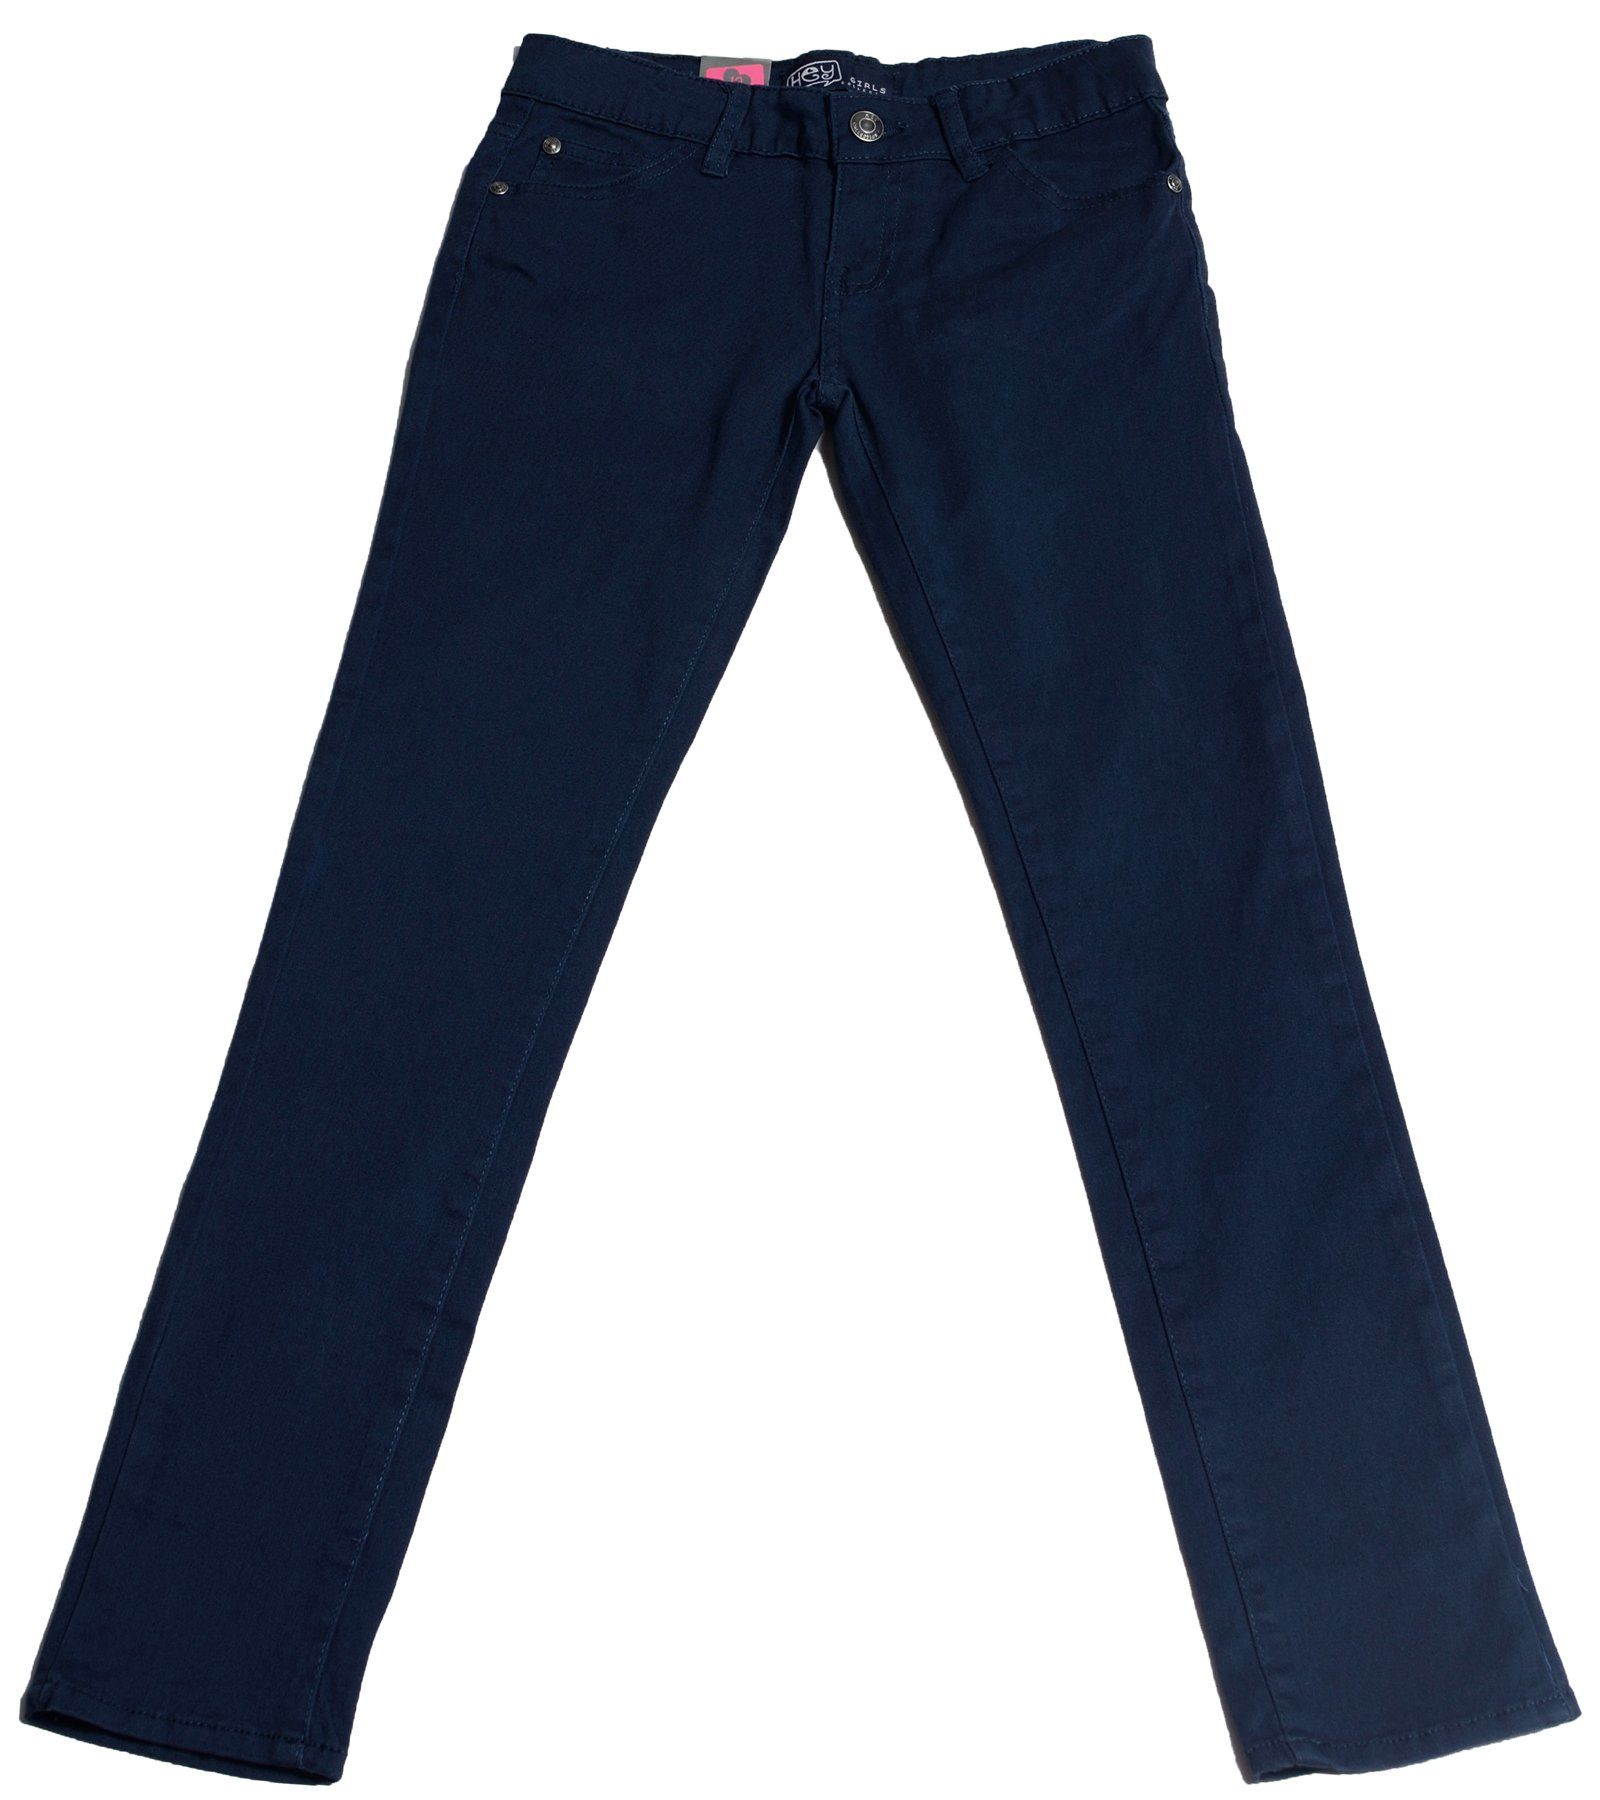 Hey Collection Big Girls Brushed Stretch Twill Skinny Jeans,7,Navy